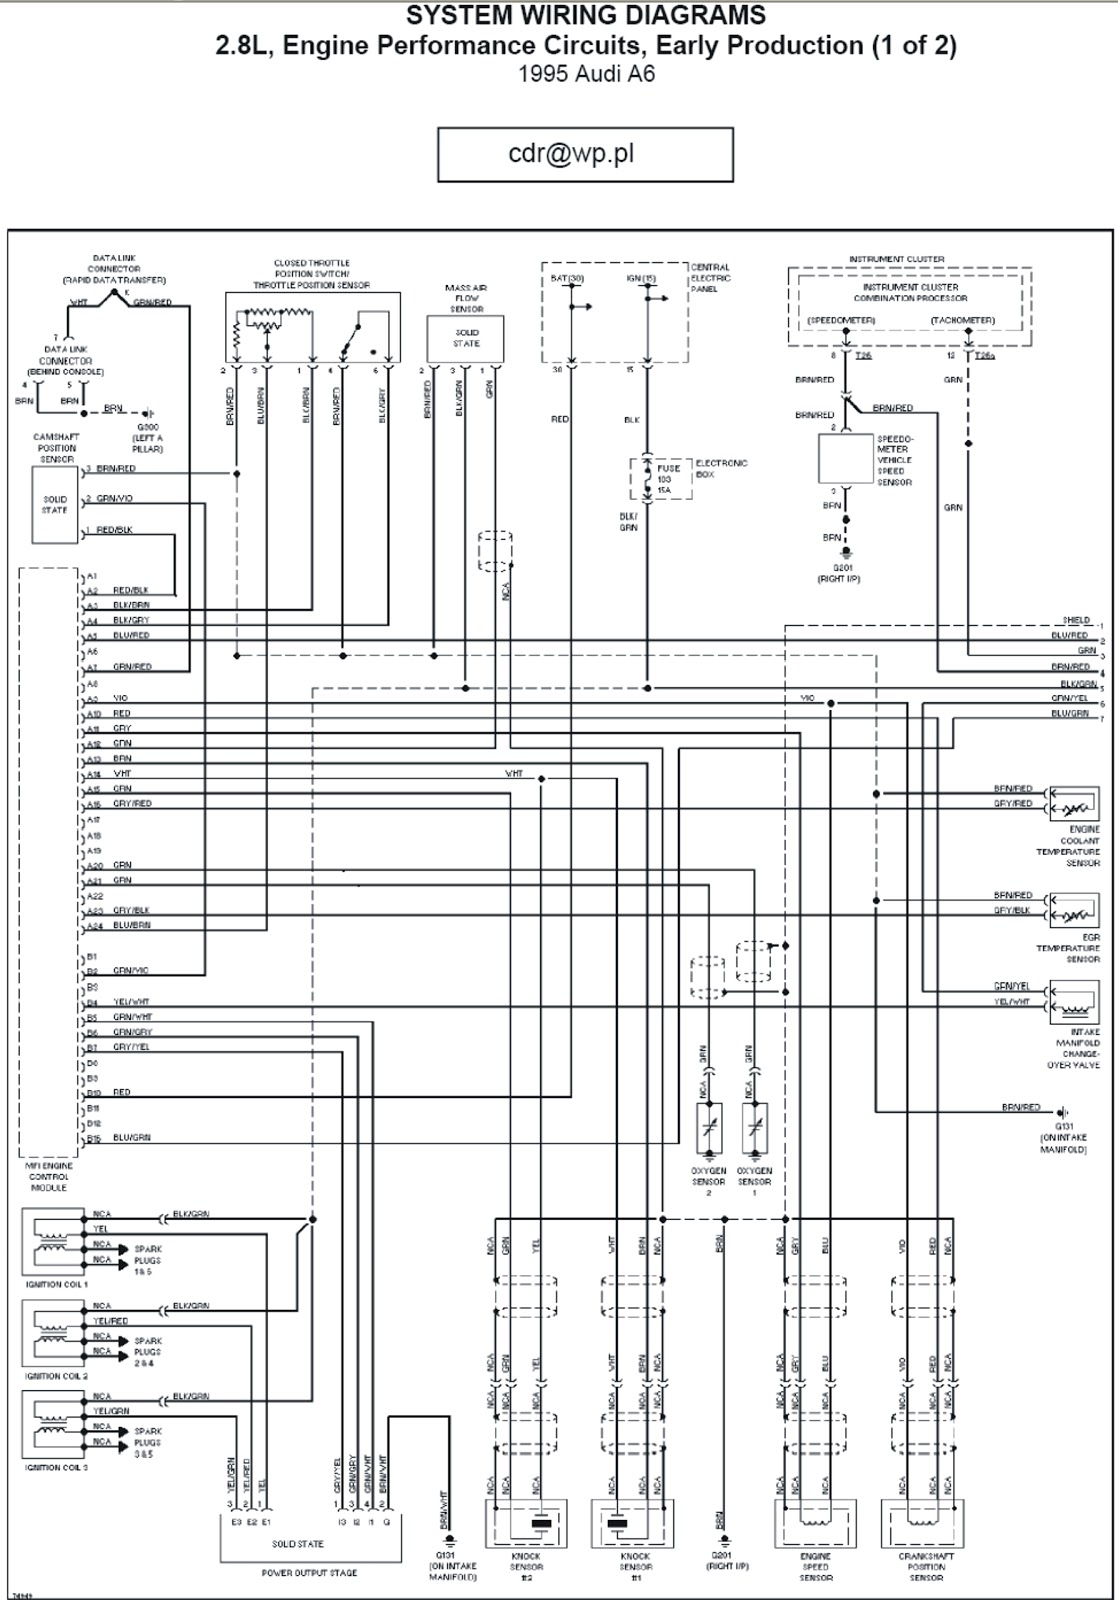 Audi A6 2005 Wiring Diagram Great Installation Of A4 Engine 2002 Stereo Harness Todays Rh 12 Wwww 5 1813weddingbarn Com B6